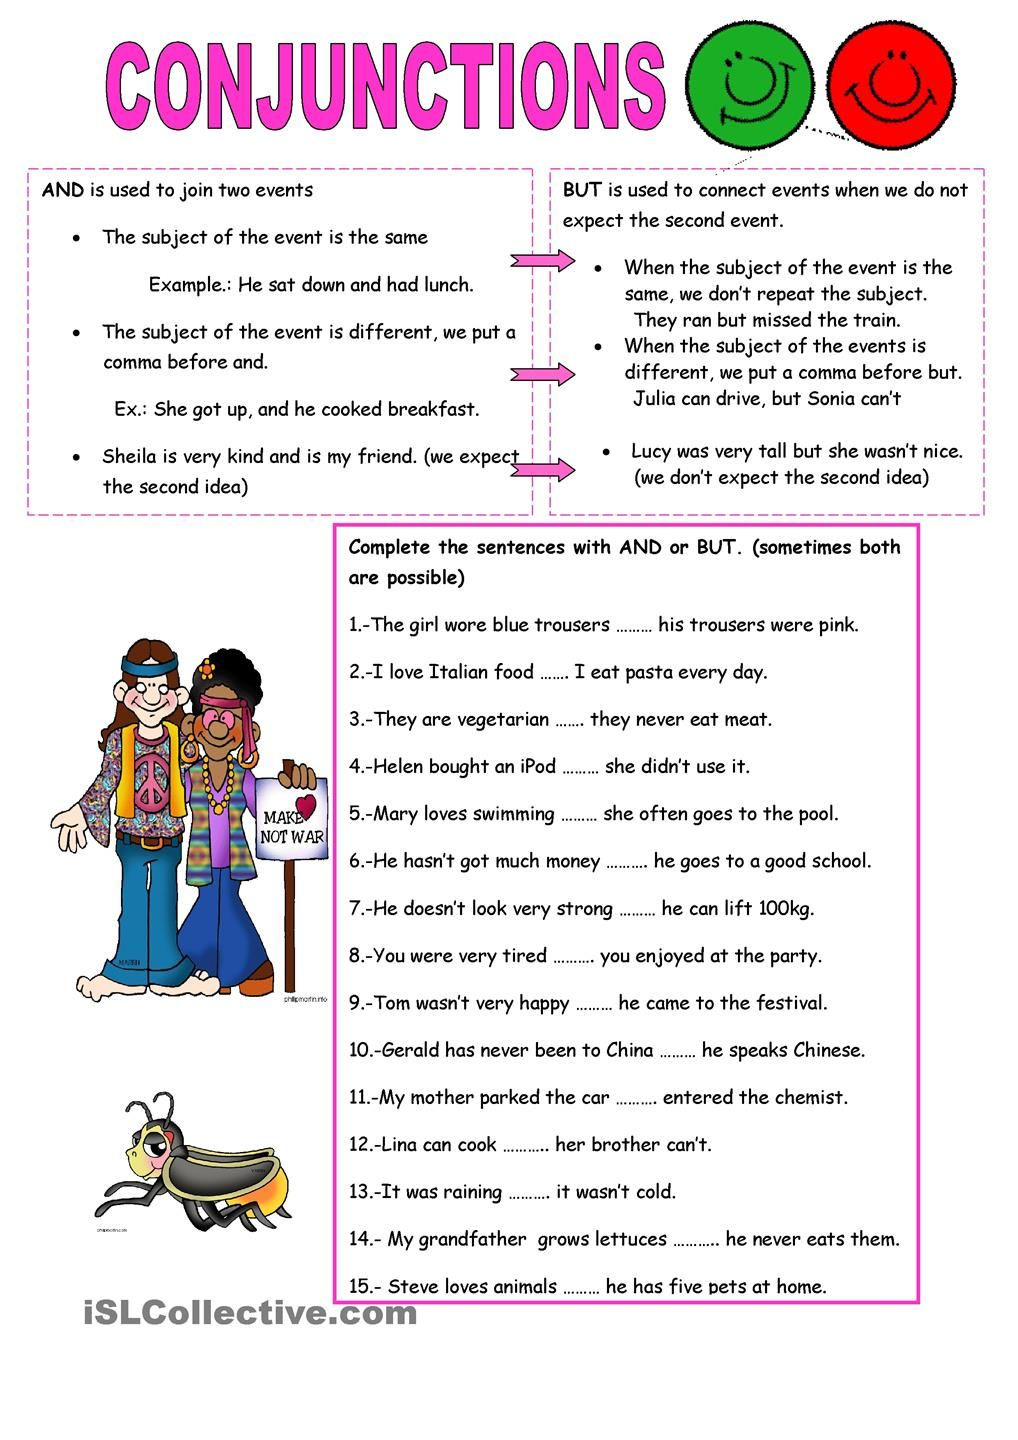 Conjunctions Worksheets 5th Grade Conjunctions and but